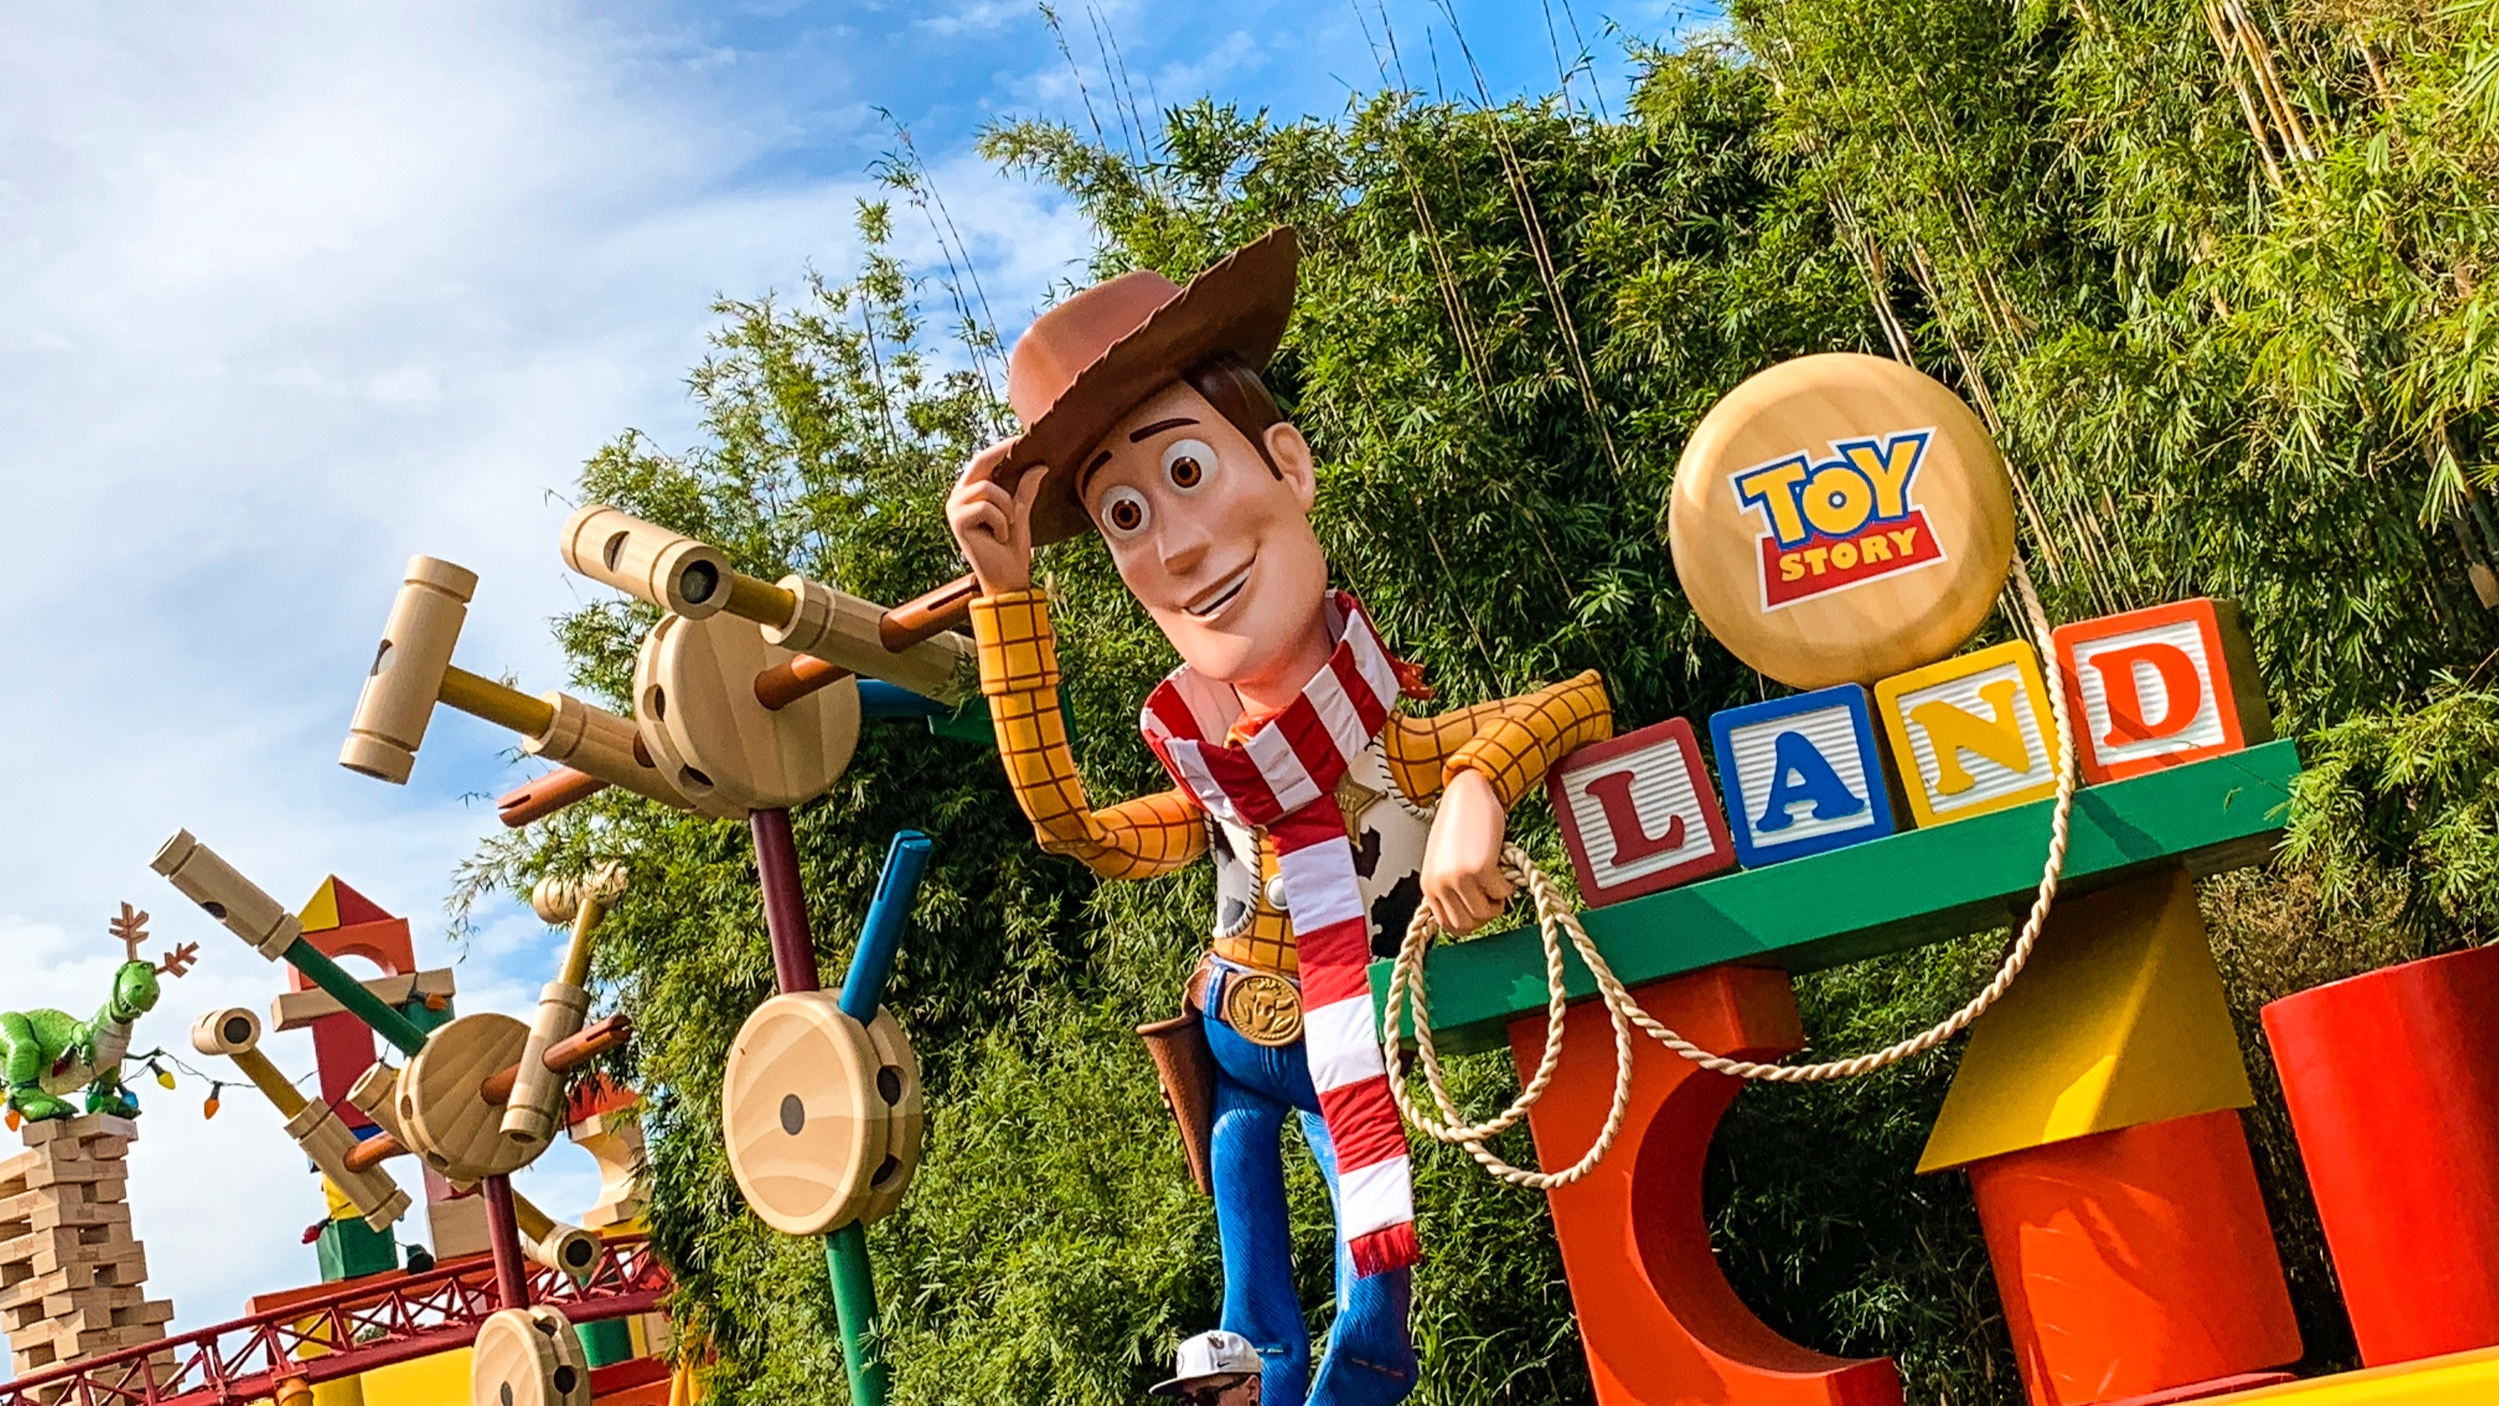 Howdy Partners and Welcome to Toy Story Land!